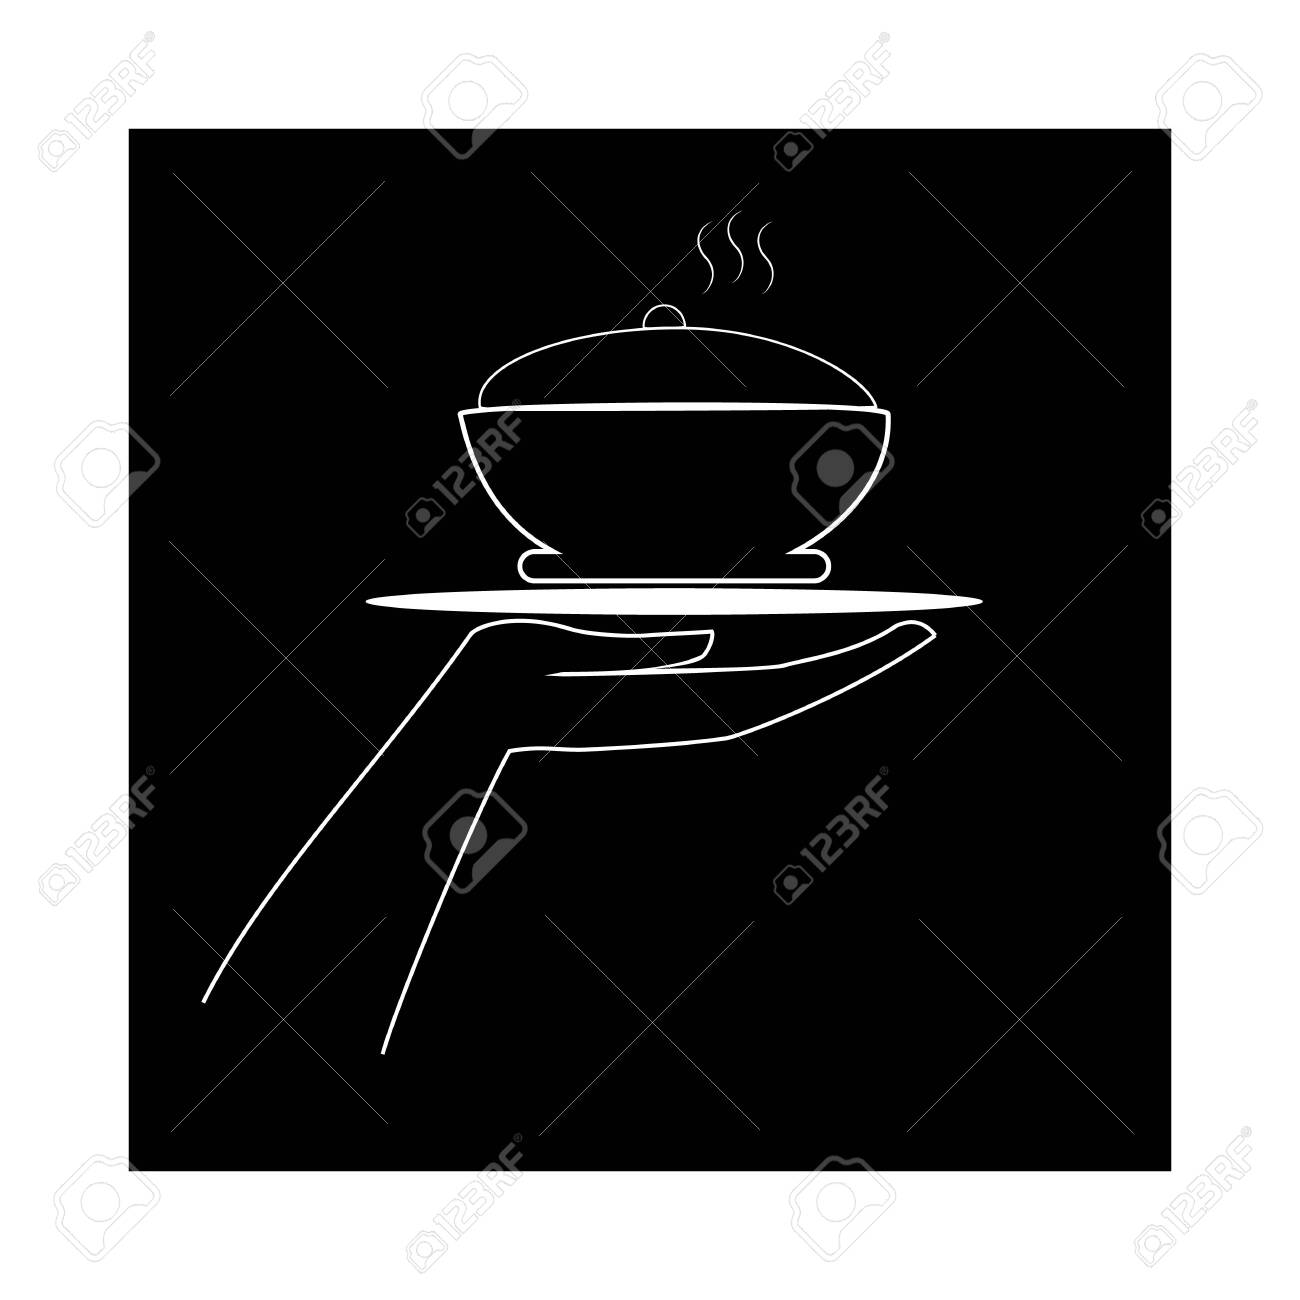 cafe Thin flat linear silhouette in square with inscription CAFE on white background Designation for restaurant emblem cafe, to banner, signboard. Monochrome design element Vector illustration - 150070350